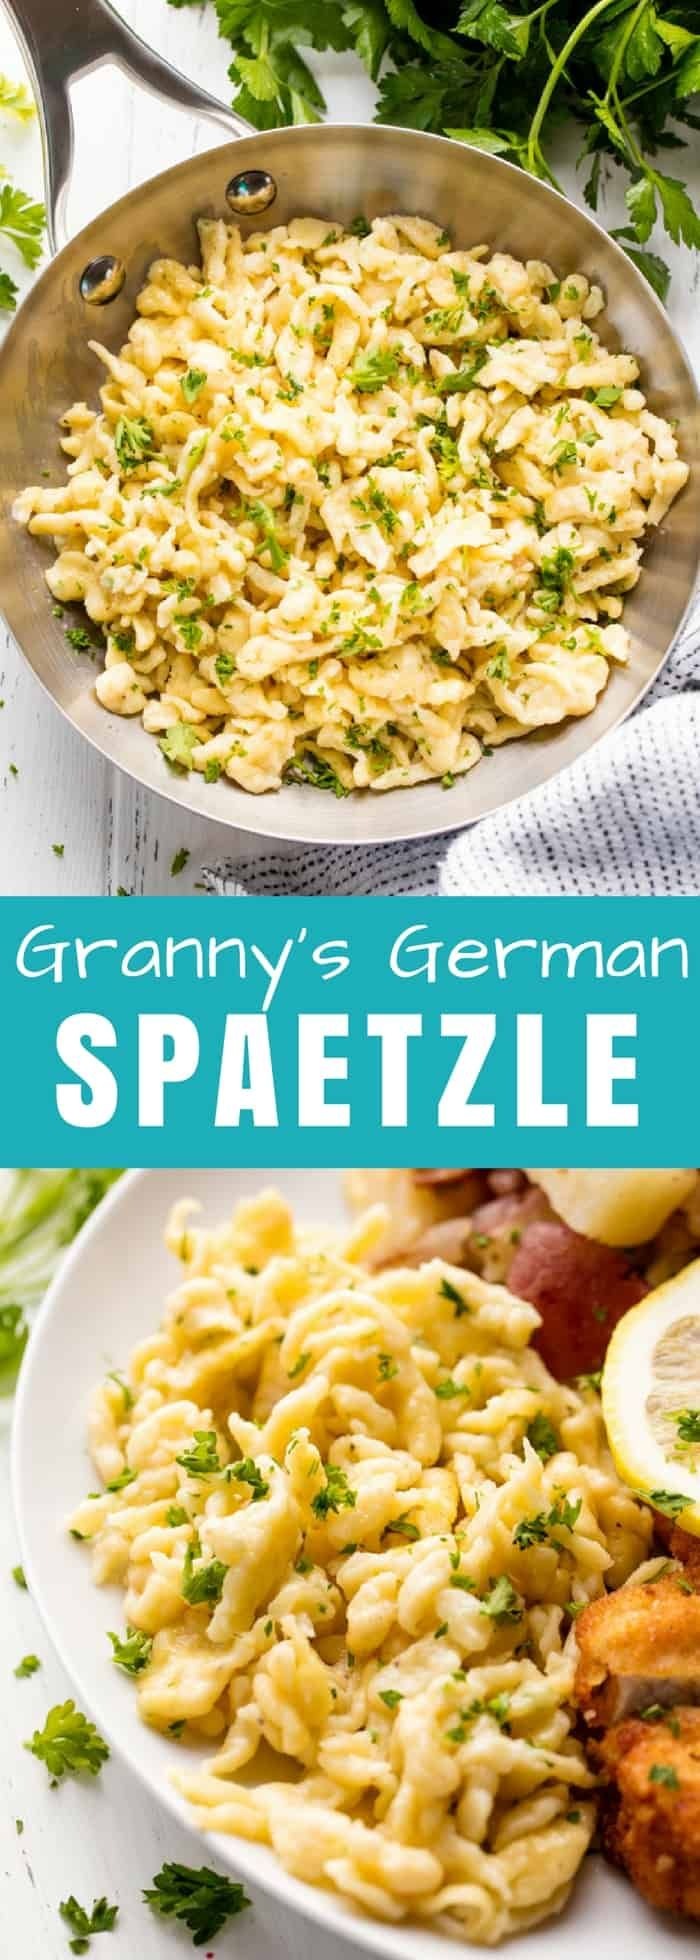 Granny's German Spaetzle is an authentic spaetzle recipe passed down in a German family for generations. Make it with or without a spaetzle maker.